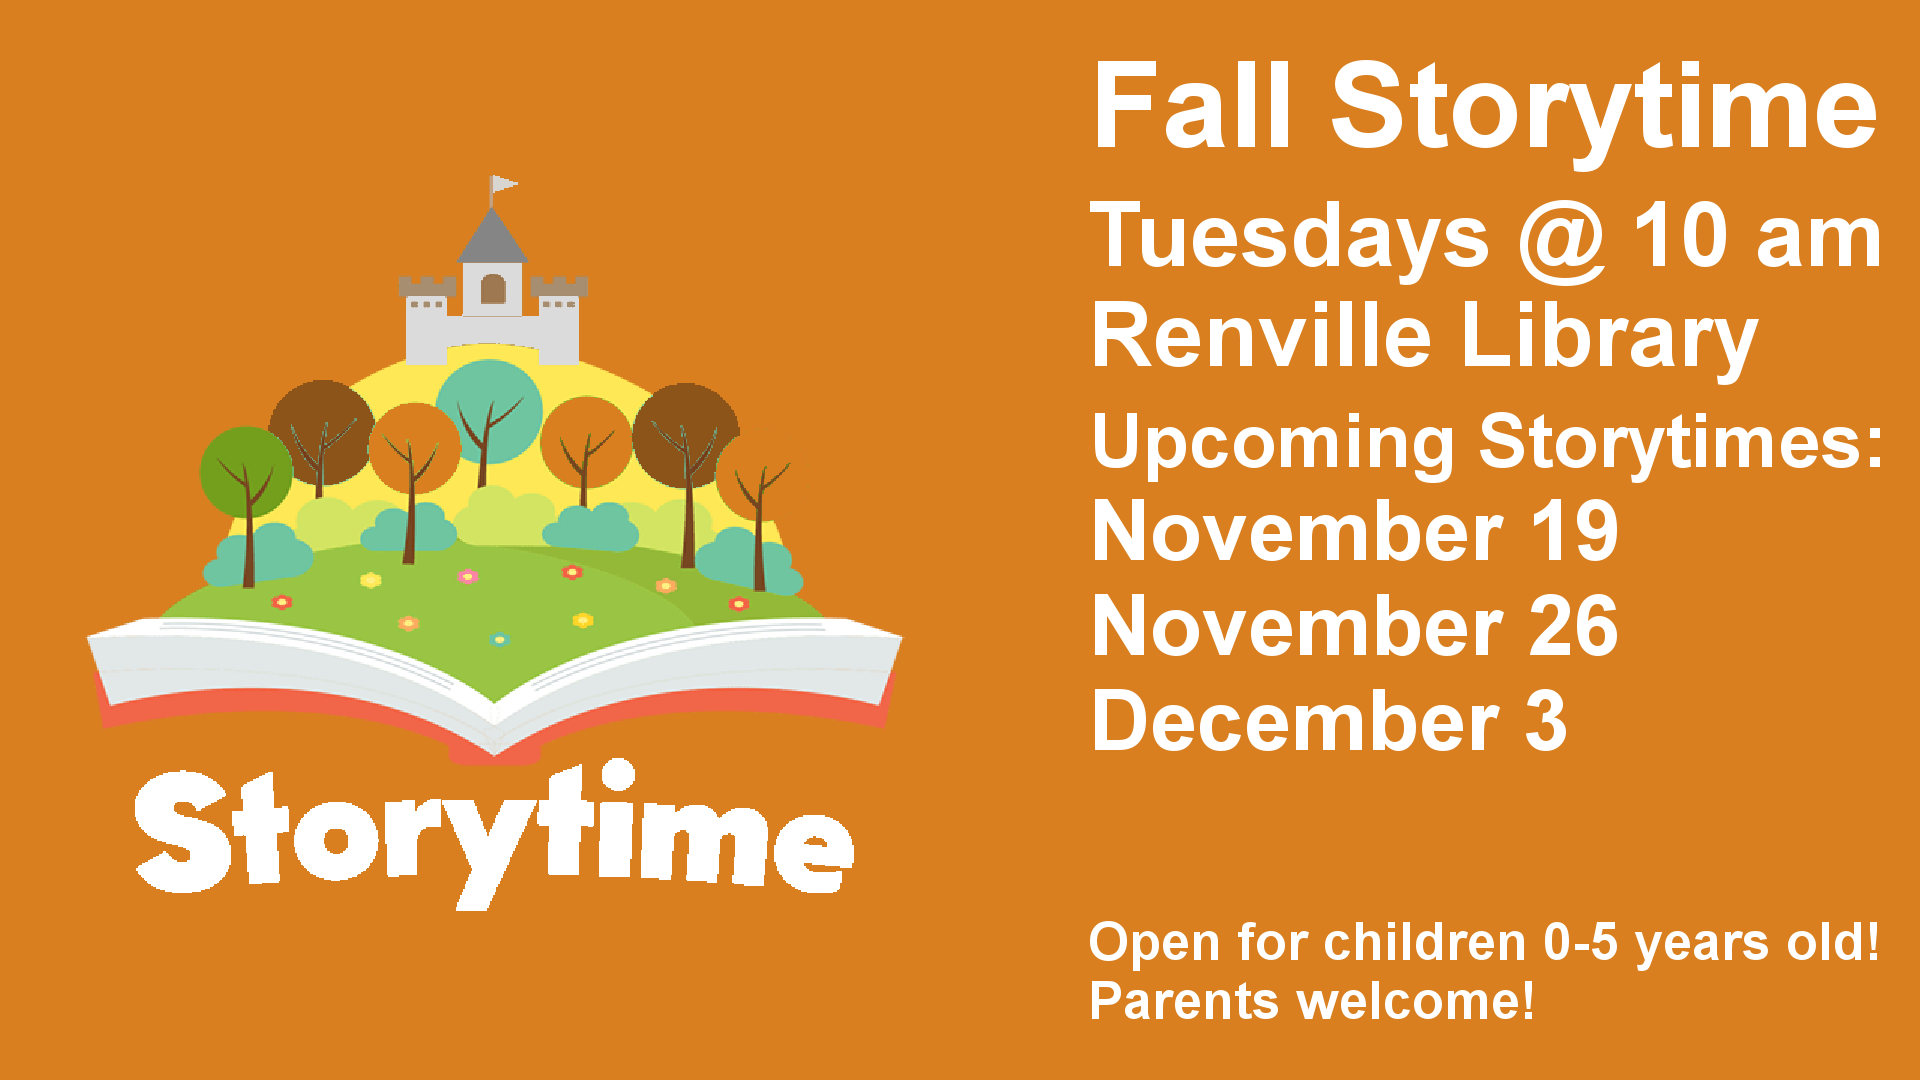 Fall Storytime Tuesdays @ 10 am Renville Library Upcoming Storytimes: November 19 November 26 December 3 Open for children 0-5 years old! Parents welcome!